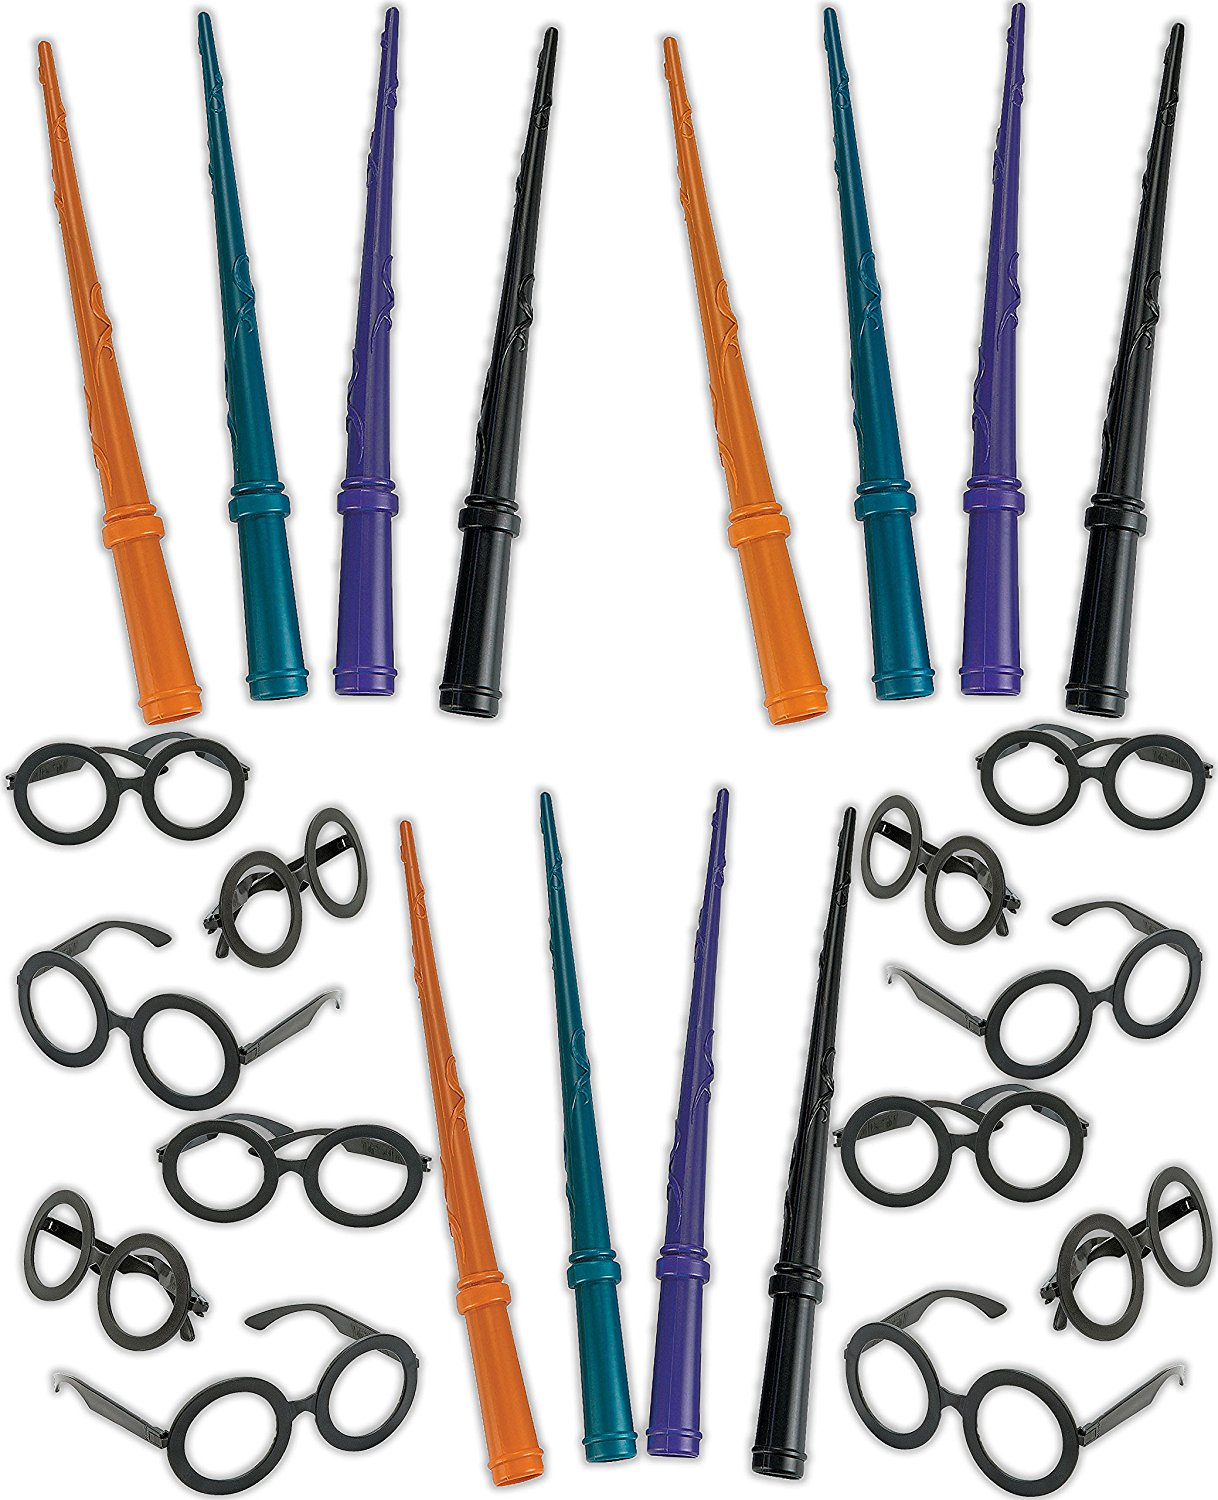 4E's Novelty Wizard Party Favors Set, Wand and Glasses, 12 Plastic Wizard Wands, 12 Wizard Glasses, Wizard Party Supplies